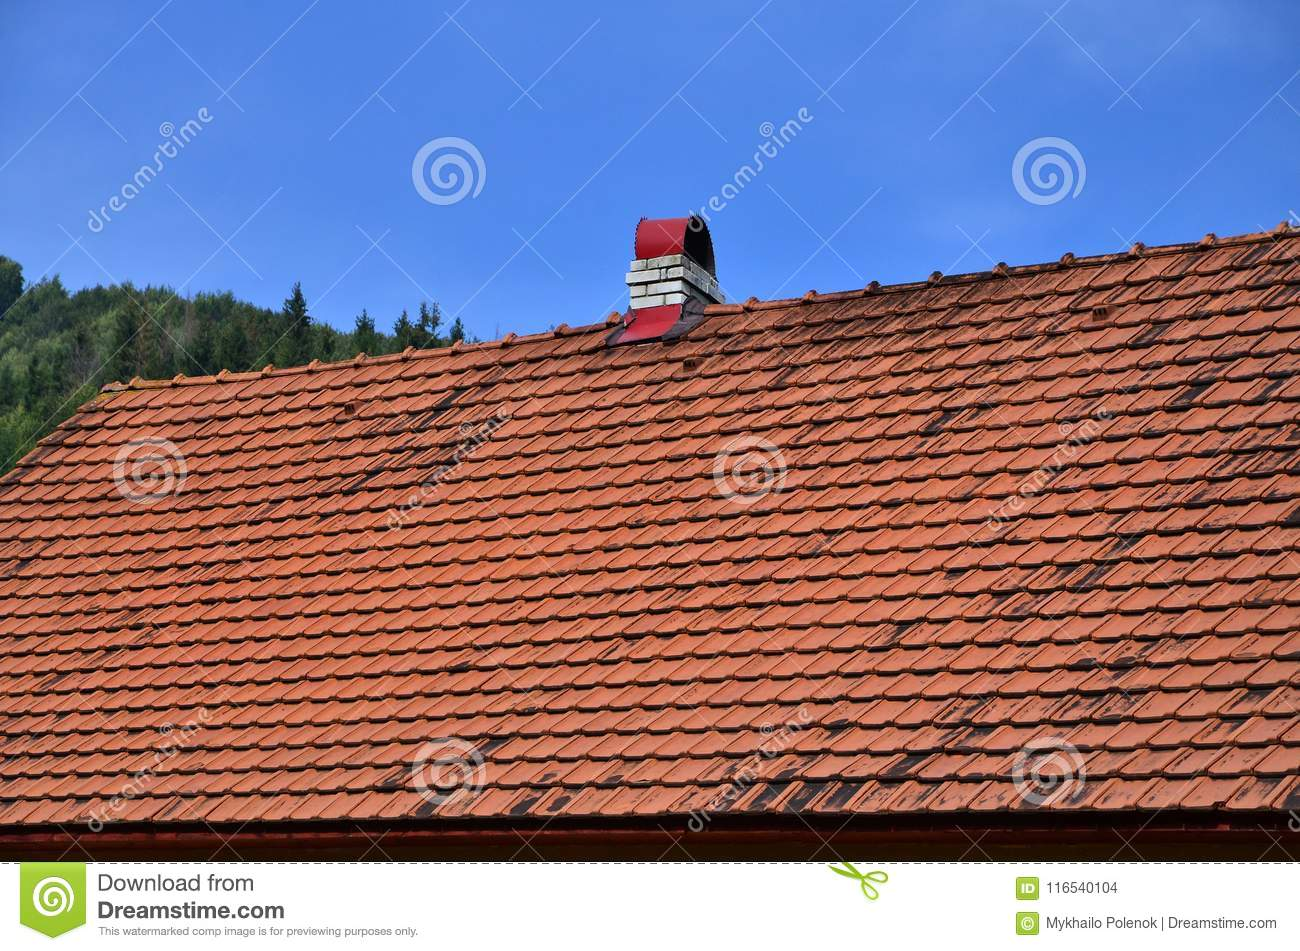 The roof of this square ceramic tile is red. The old type of roof covering in rich houses of the 19th centur